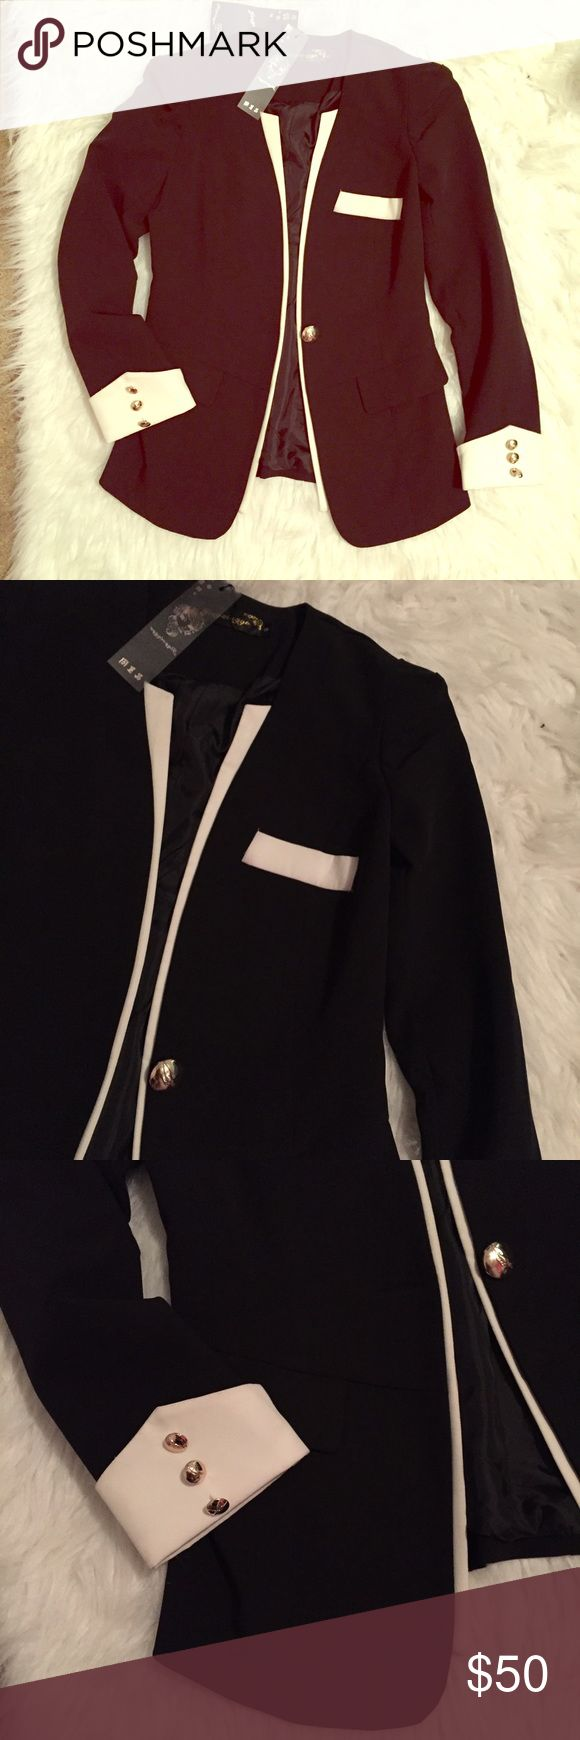 Women's Tuxedo Jacket Black with white detailing and gold buttons. Very tailored feminine fit. New with tags, never worn. Boutique  Jackets & Coats